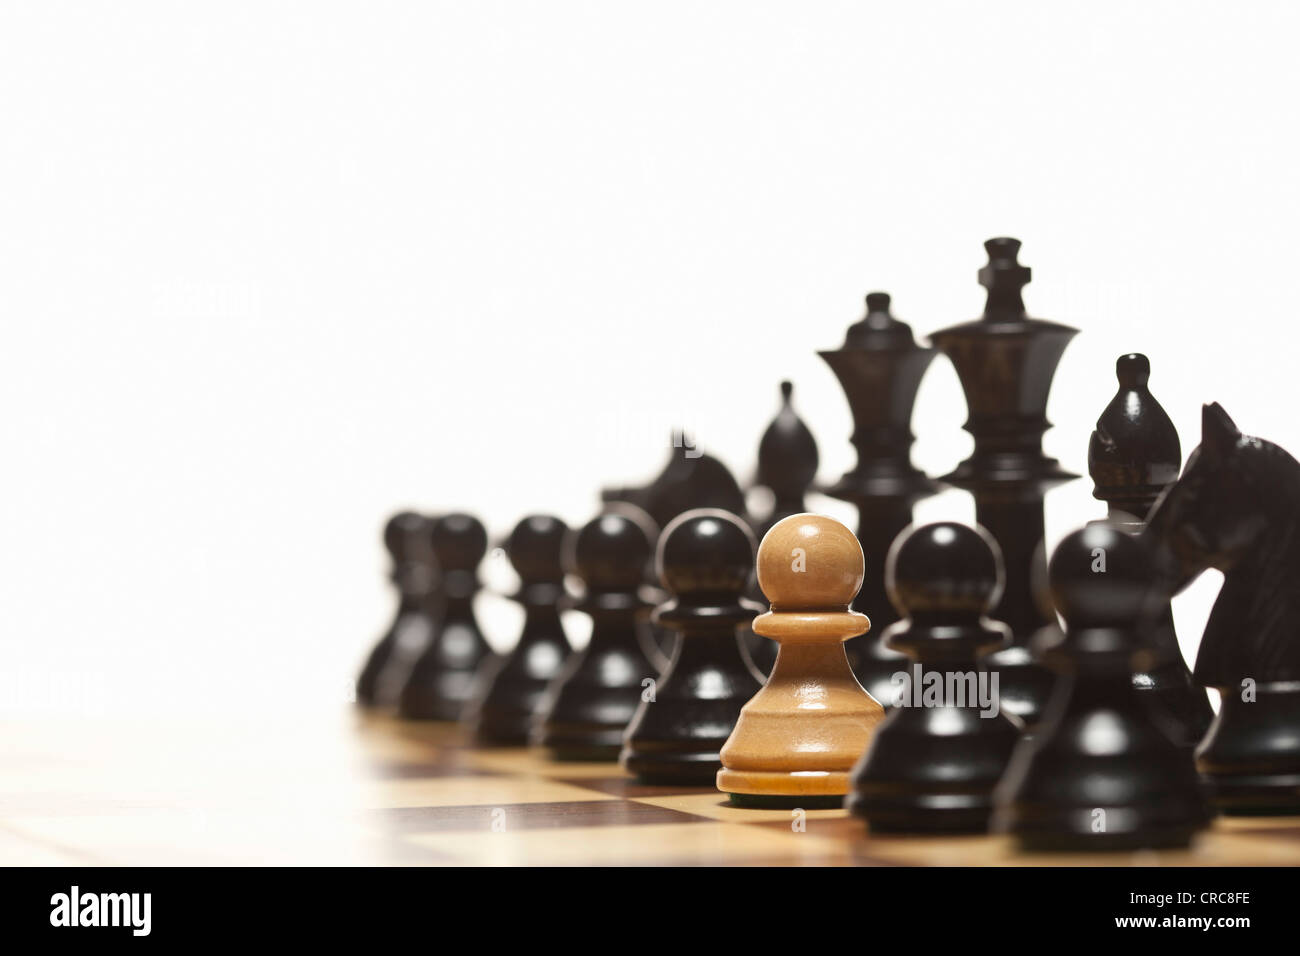 White pawn in black chess set - Stock Image